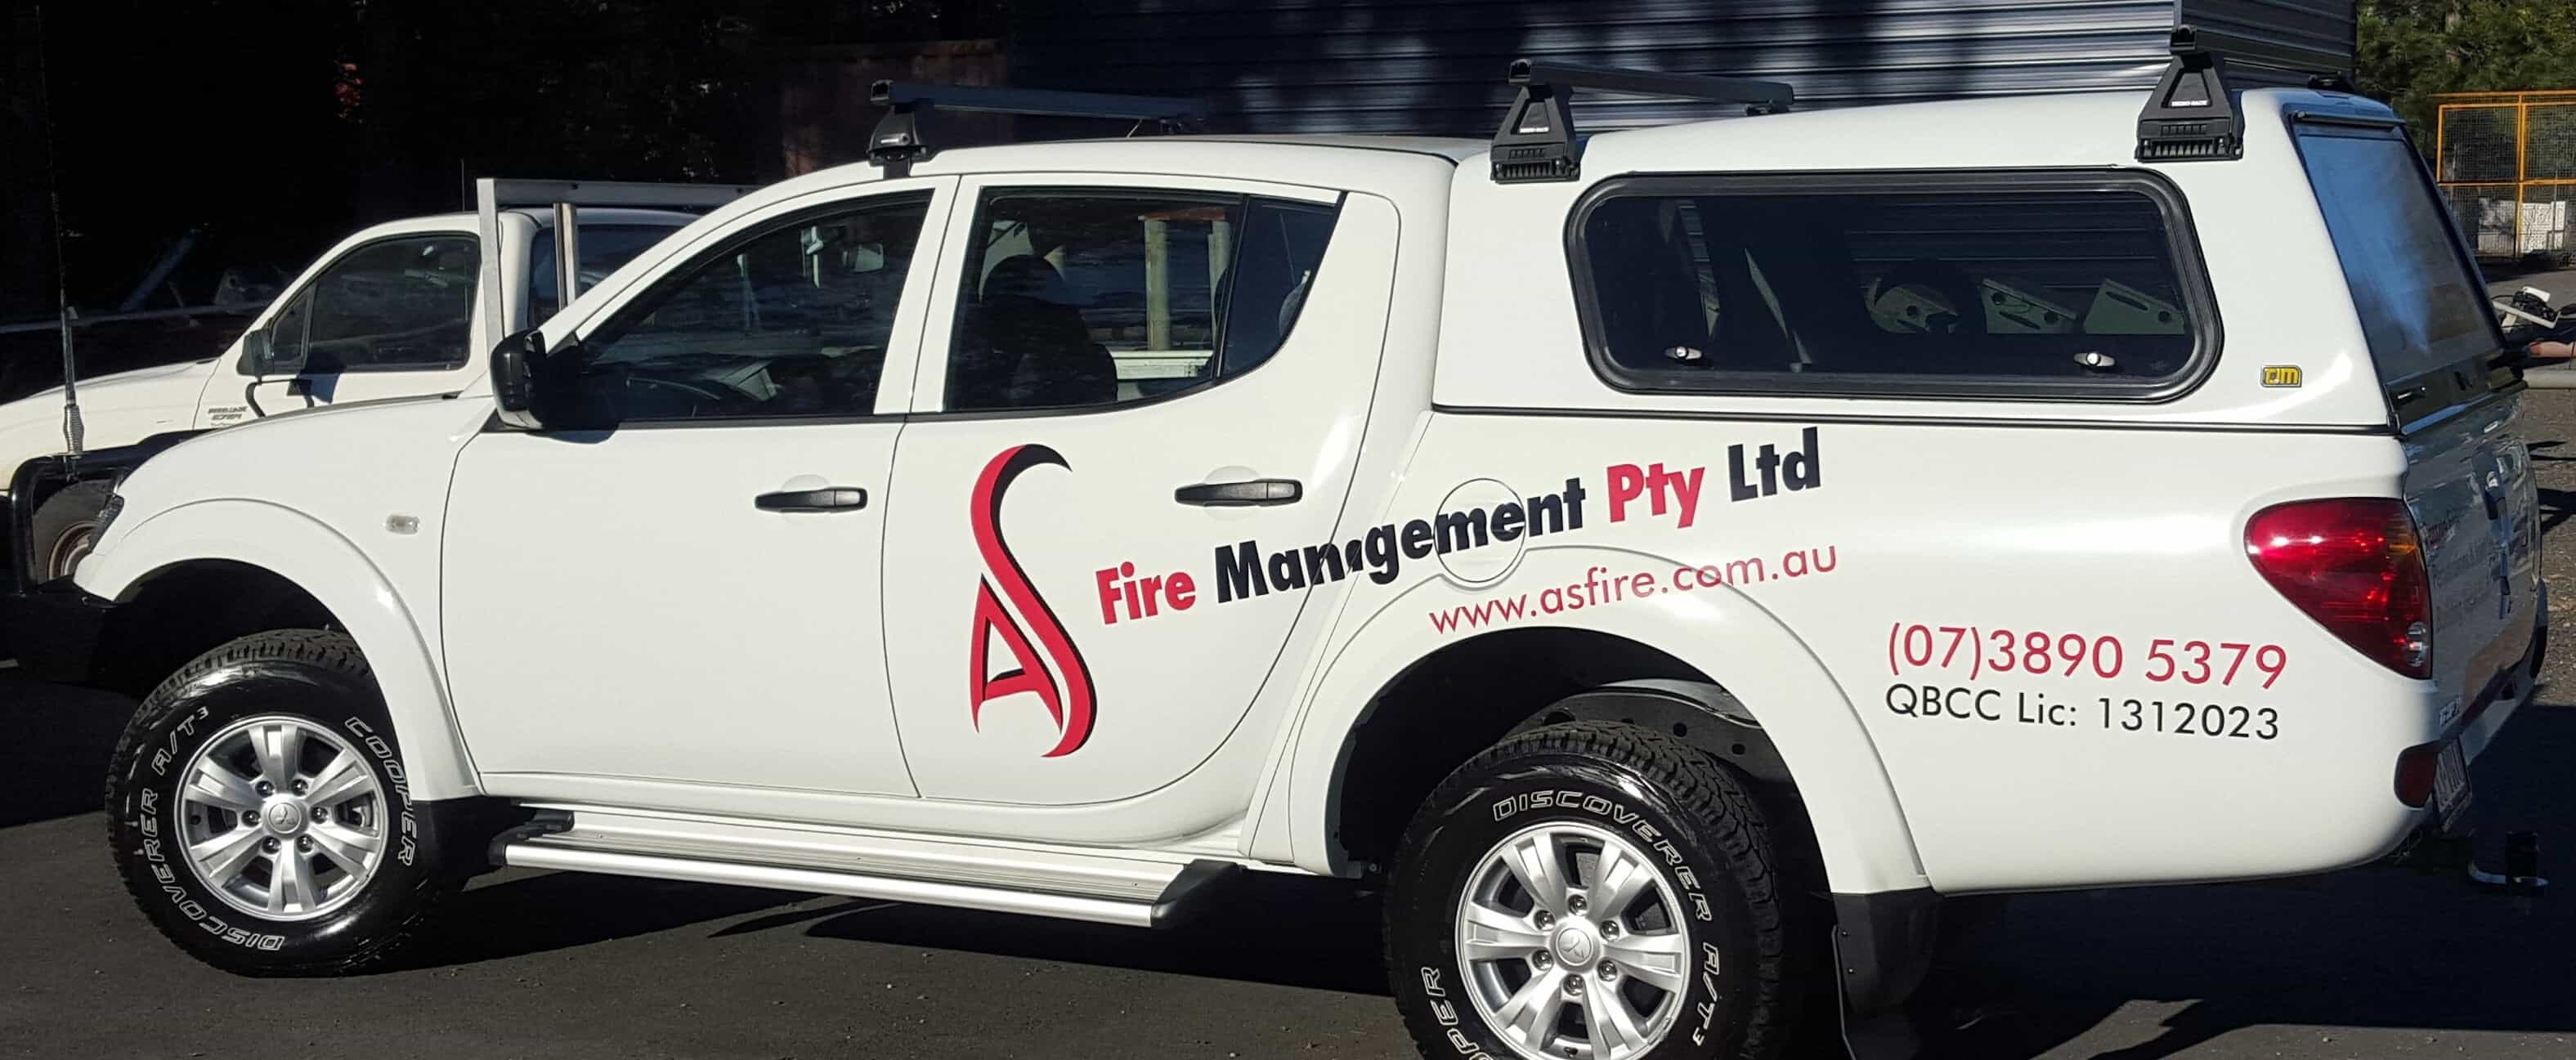 Fire Protection Services Tweed Heads